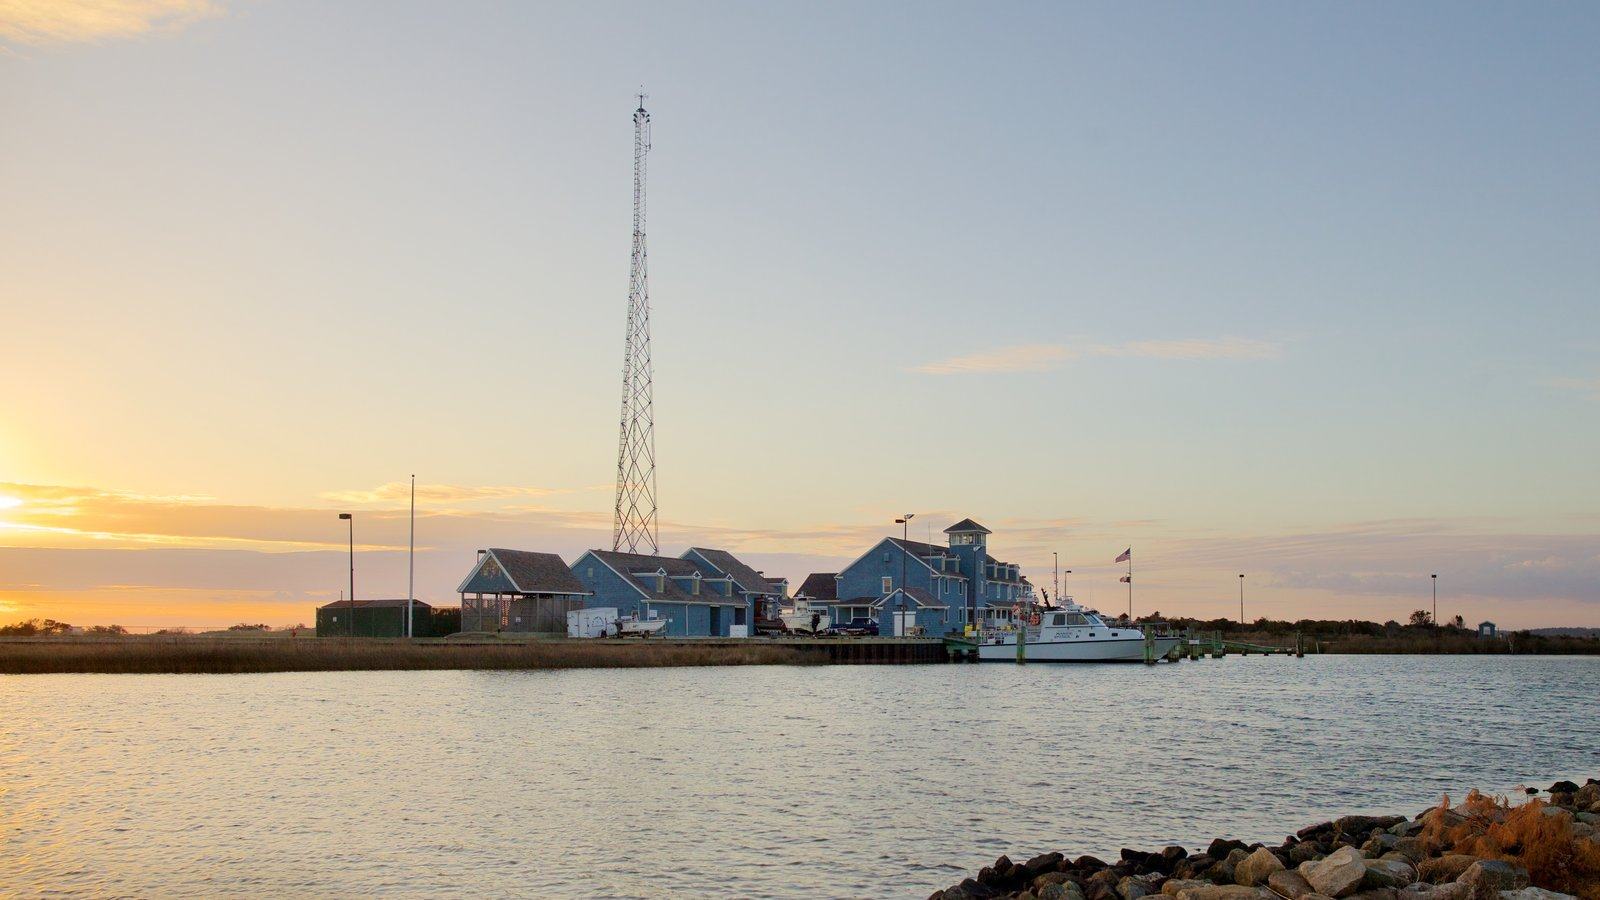 Oregon Inlet Fishing Center featuring fishing, boating and a bay or harbor